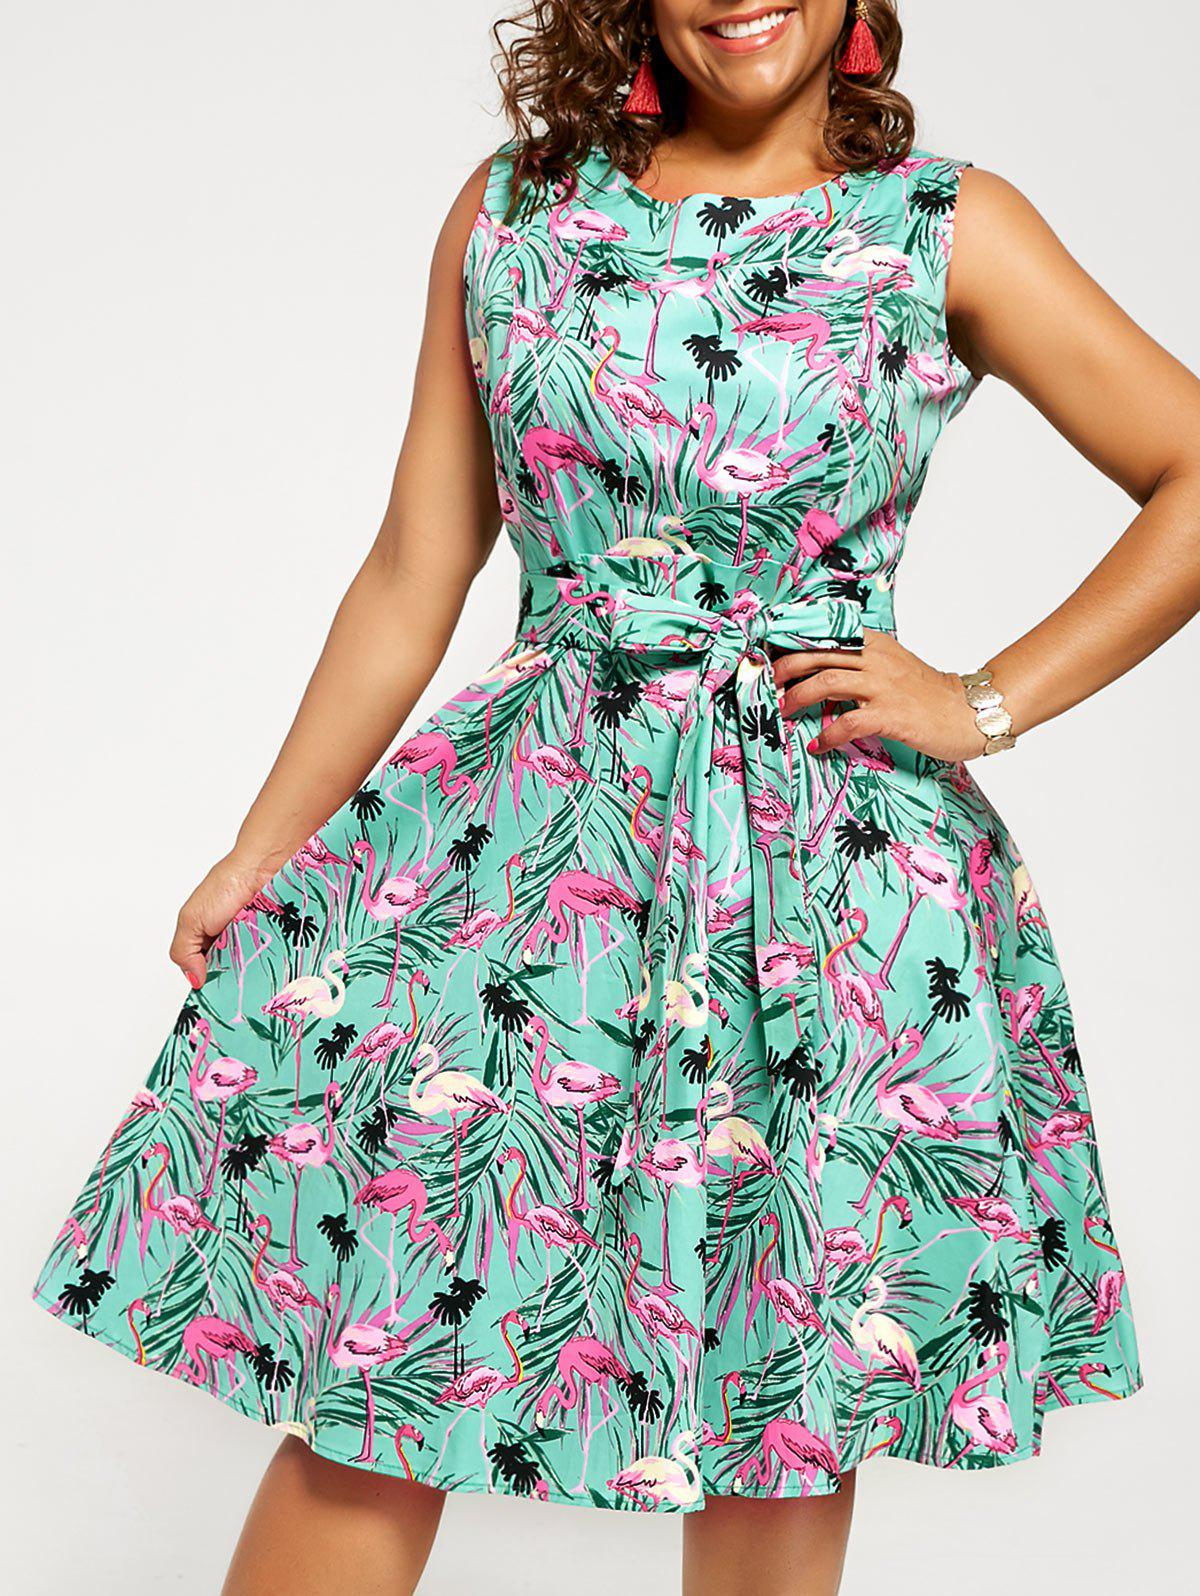 Vintage Animal Print Plus Size Pin Up DressWOMEN<br><br>Size: 2XL; Color: GREEN; Style: Vintage; Material: Cotton,Polyester; Silhouette: A-Line; Dresses Length: Knee-Length; Neckline: Round Collar; Sleeve Length: Sleeveless; Pattern Type: Animal; Placement Print: No; With Belt: No; Season: Summer; Weight: 0.4000kg; Package Contents: 1 x Dress;